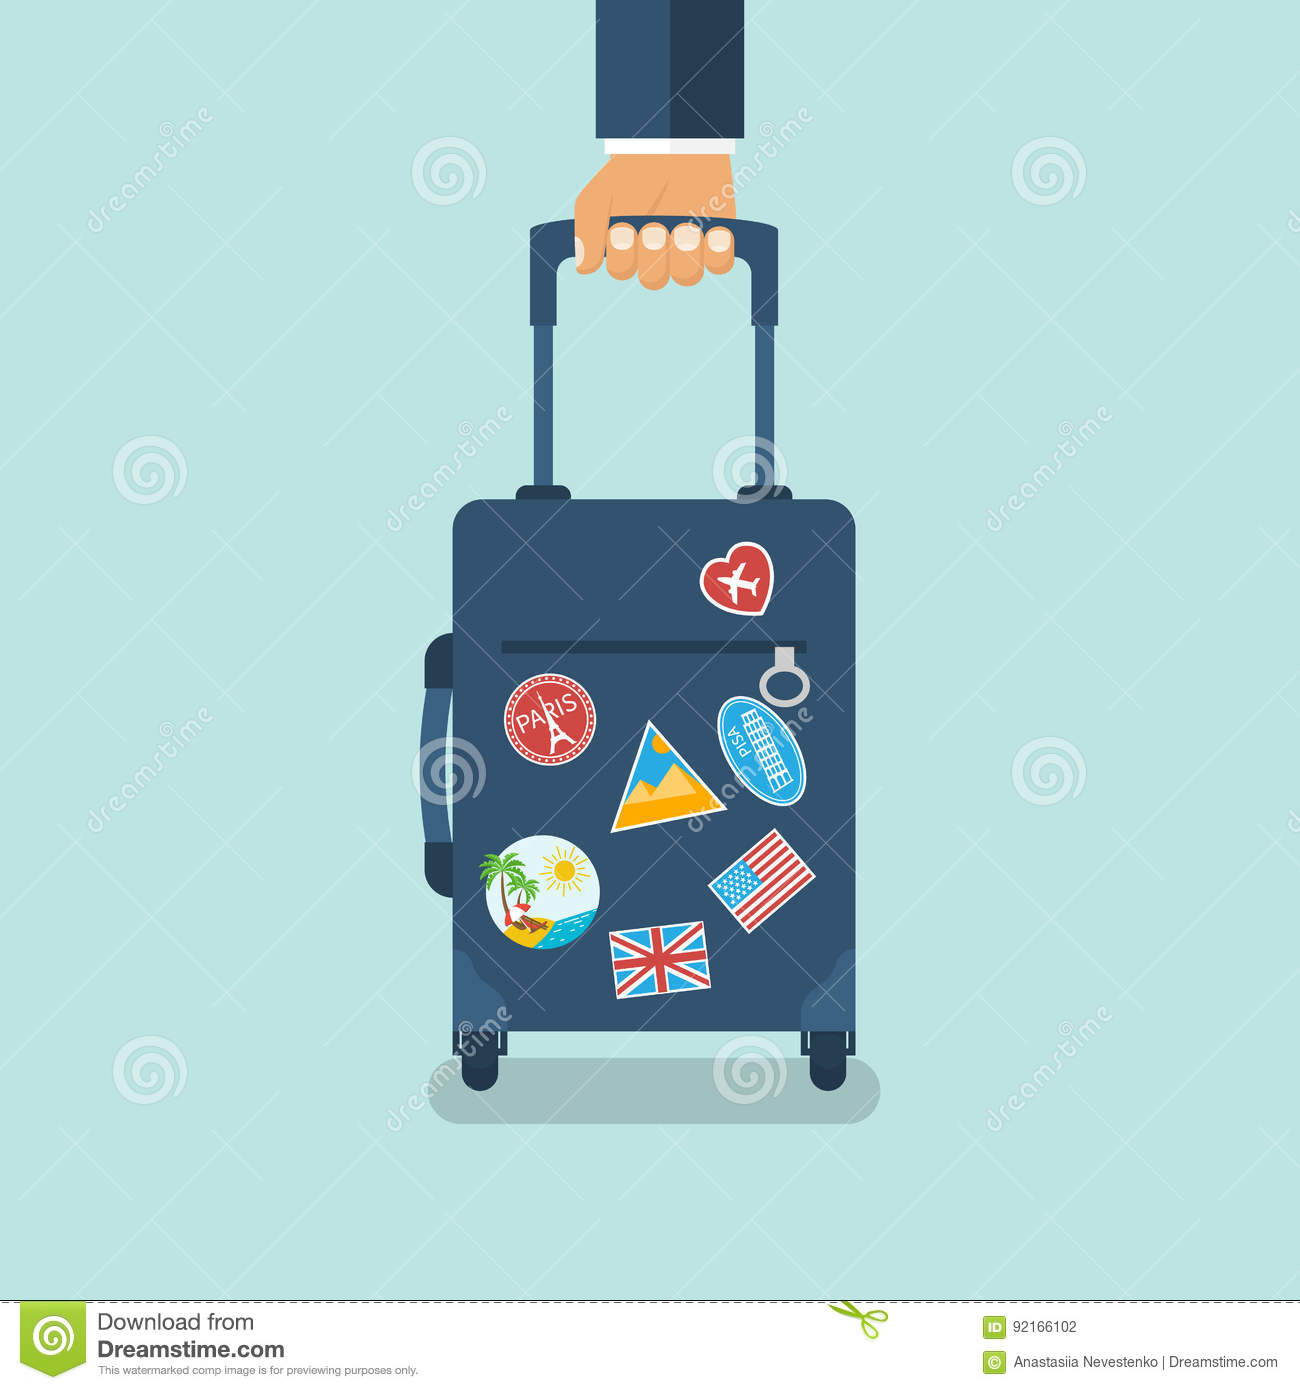 Travel Bag In Hand Carrying Suitcase Stock Vector Illustration Of Business Concept 92166102